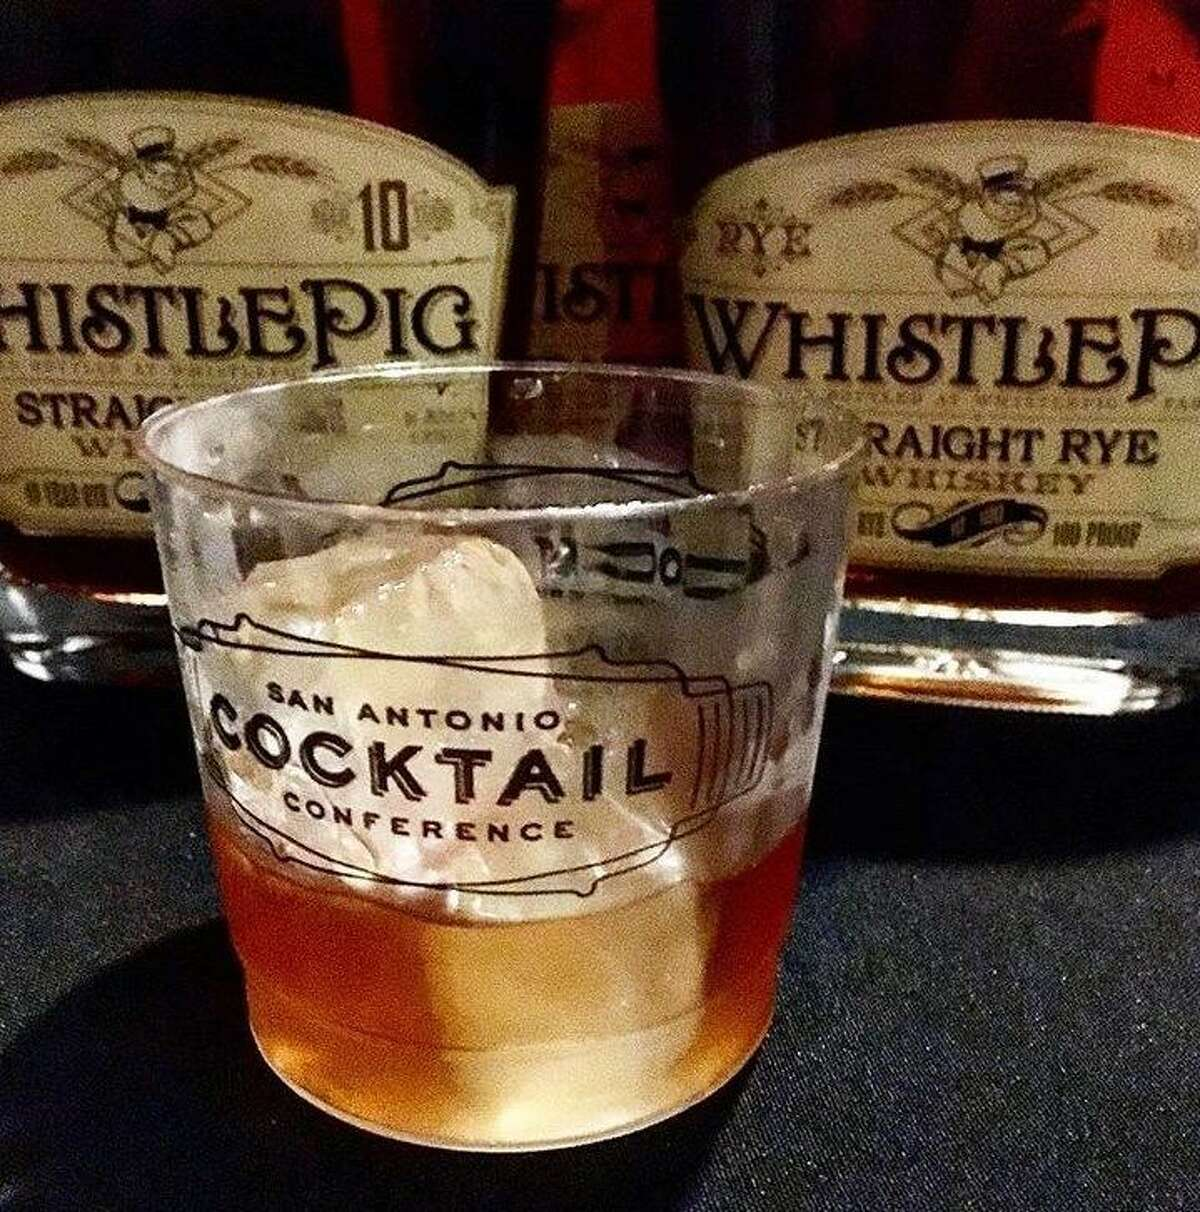 A Vieux Carre made with WhistlePig rye presented at the San Antonio Cocktail Conference's Stroll on Houston Street last year.